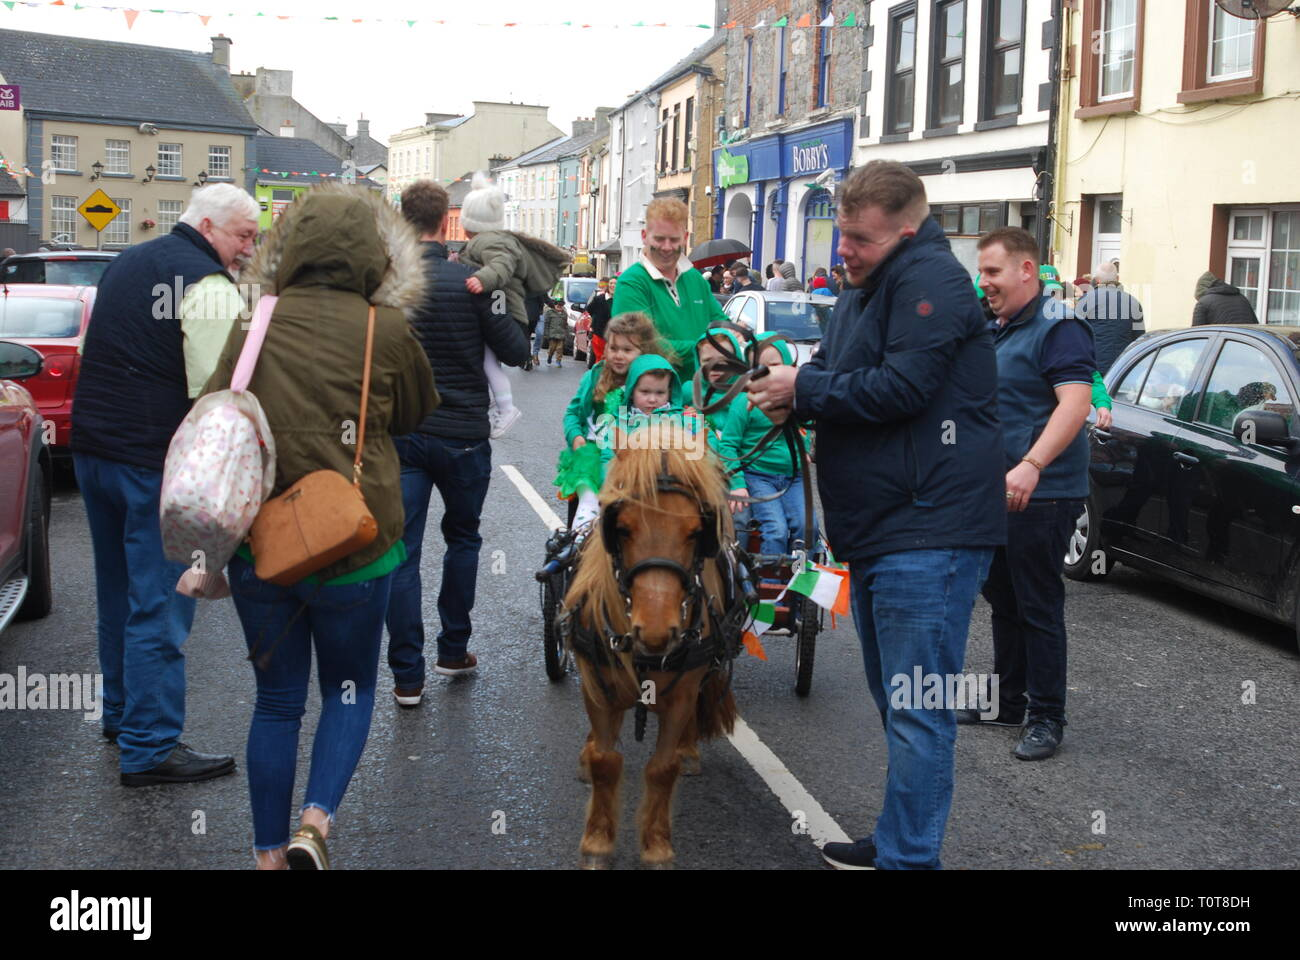 Pony and Trap on St. Patricks Day, Rathkeale,County Limerick, Ireland. - Stock Image